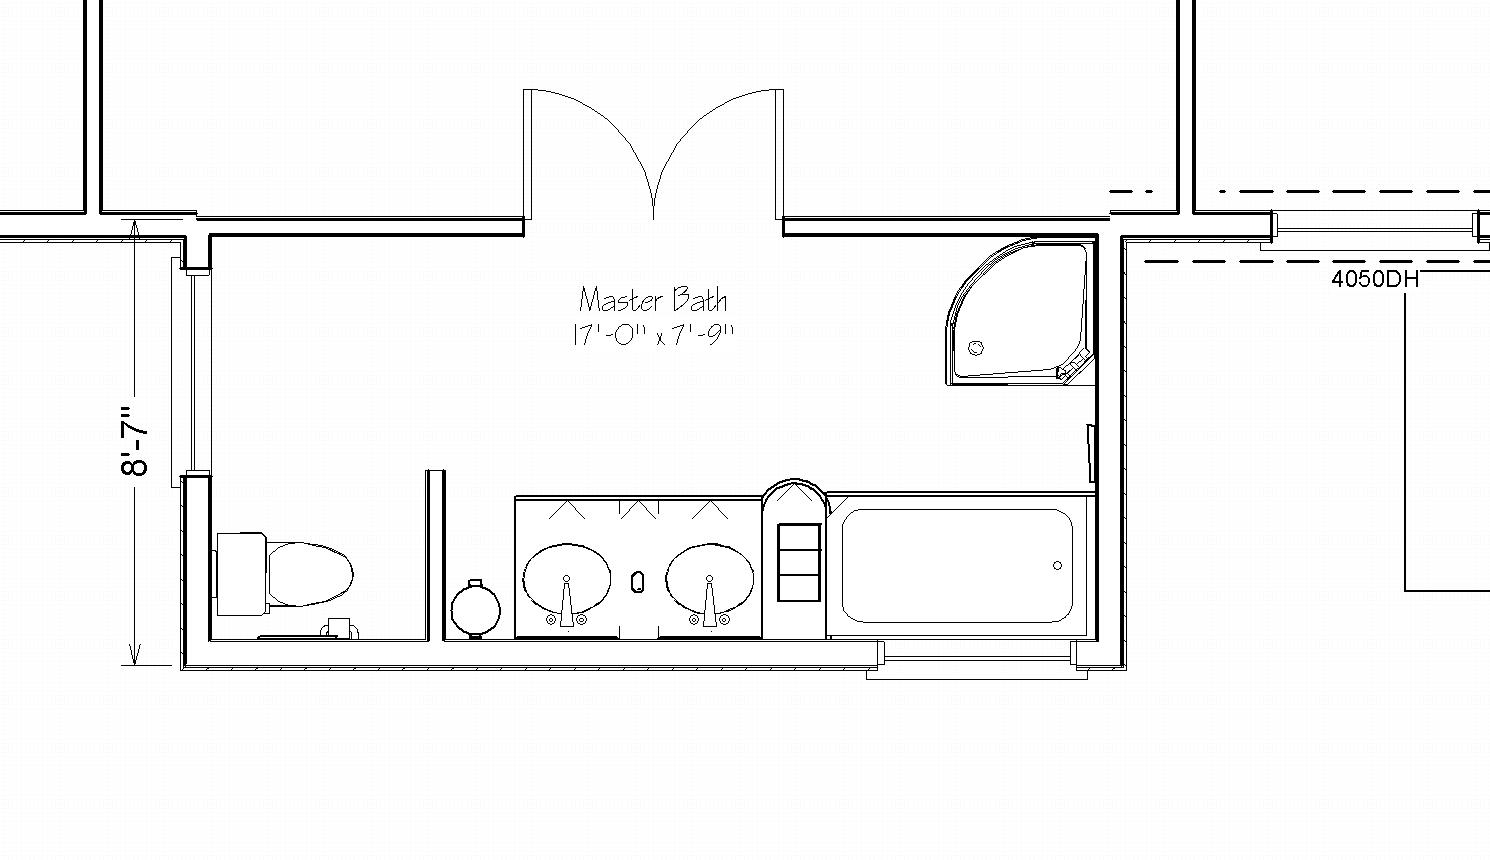 Master bath suite addition 17 by 8 extensions simply Bathroom blueprints for 8x10 space